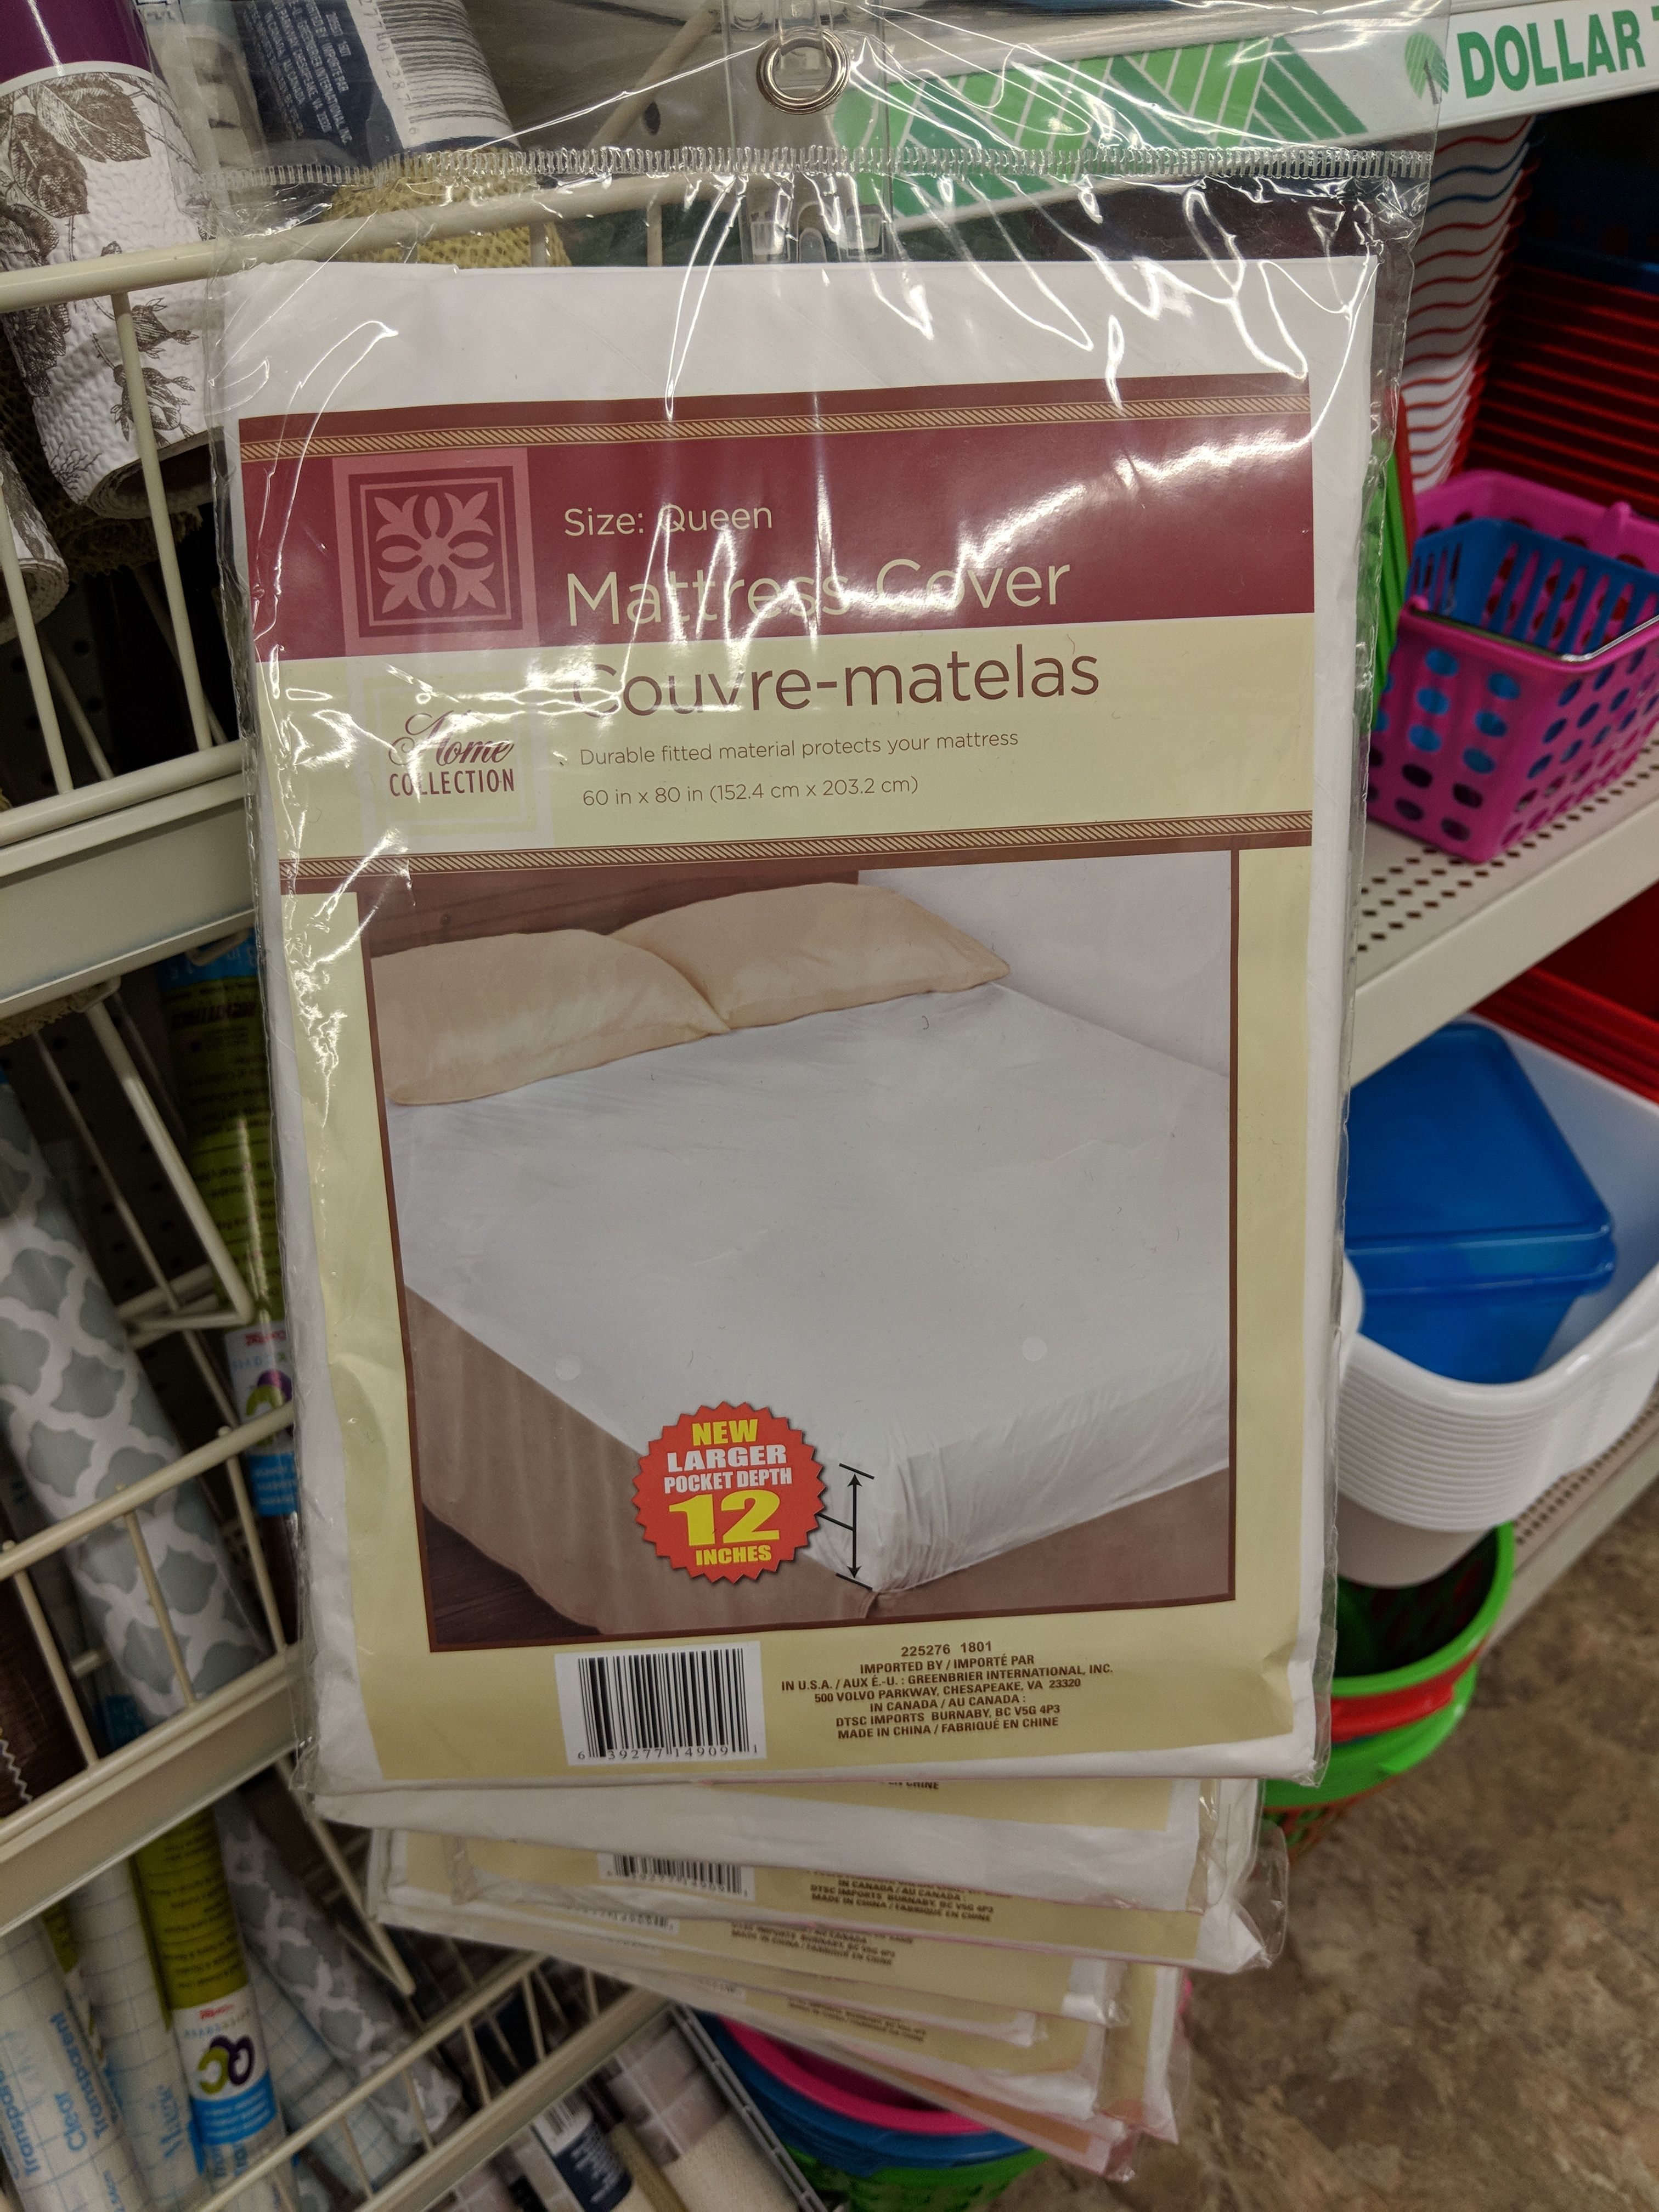 5 Moving Essentials To Buy At The Dollar Store Mattress Cover For Moving Moving Mattress Moving Packing